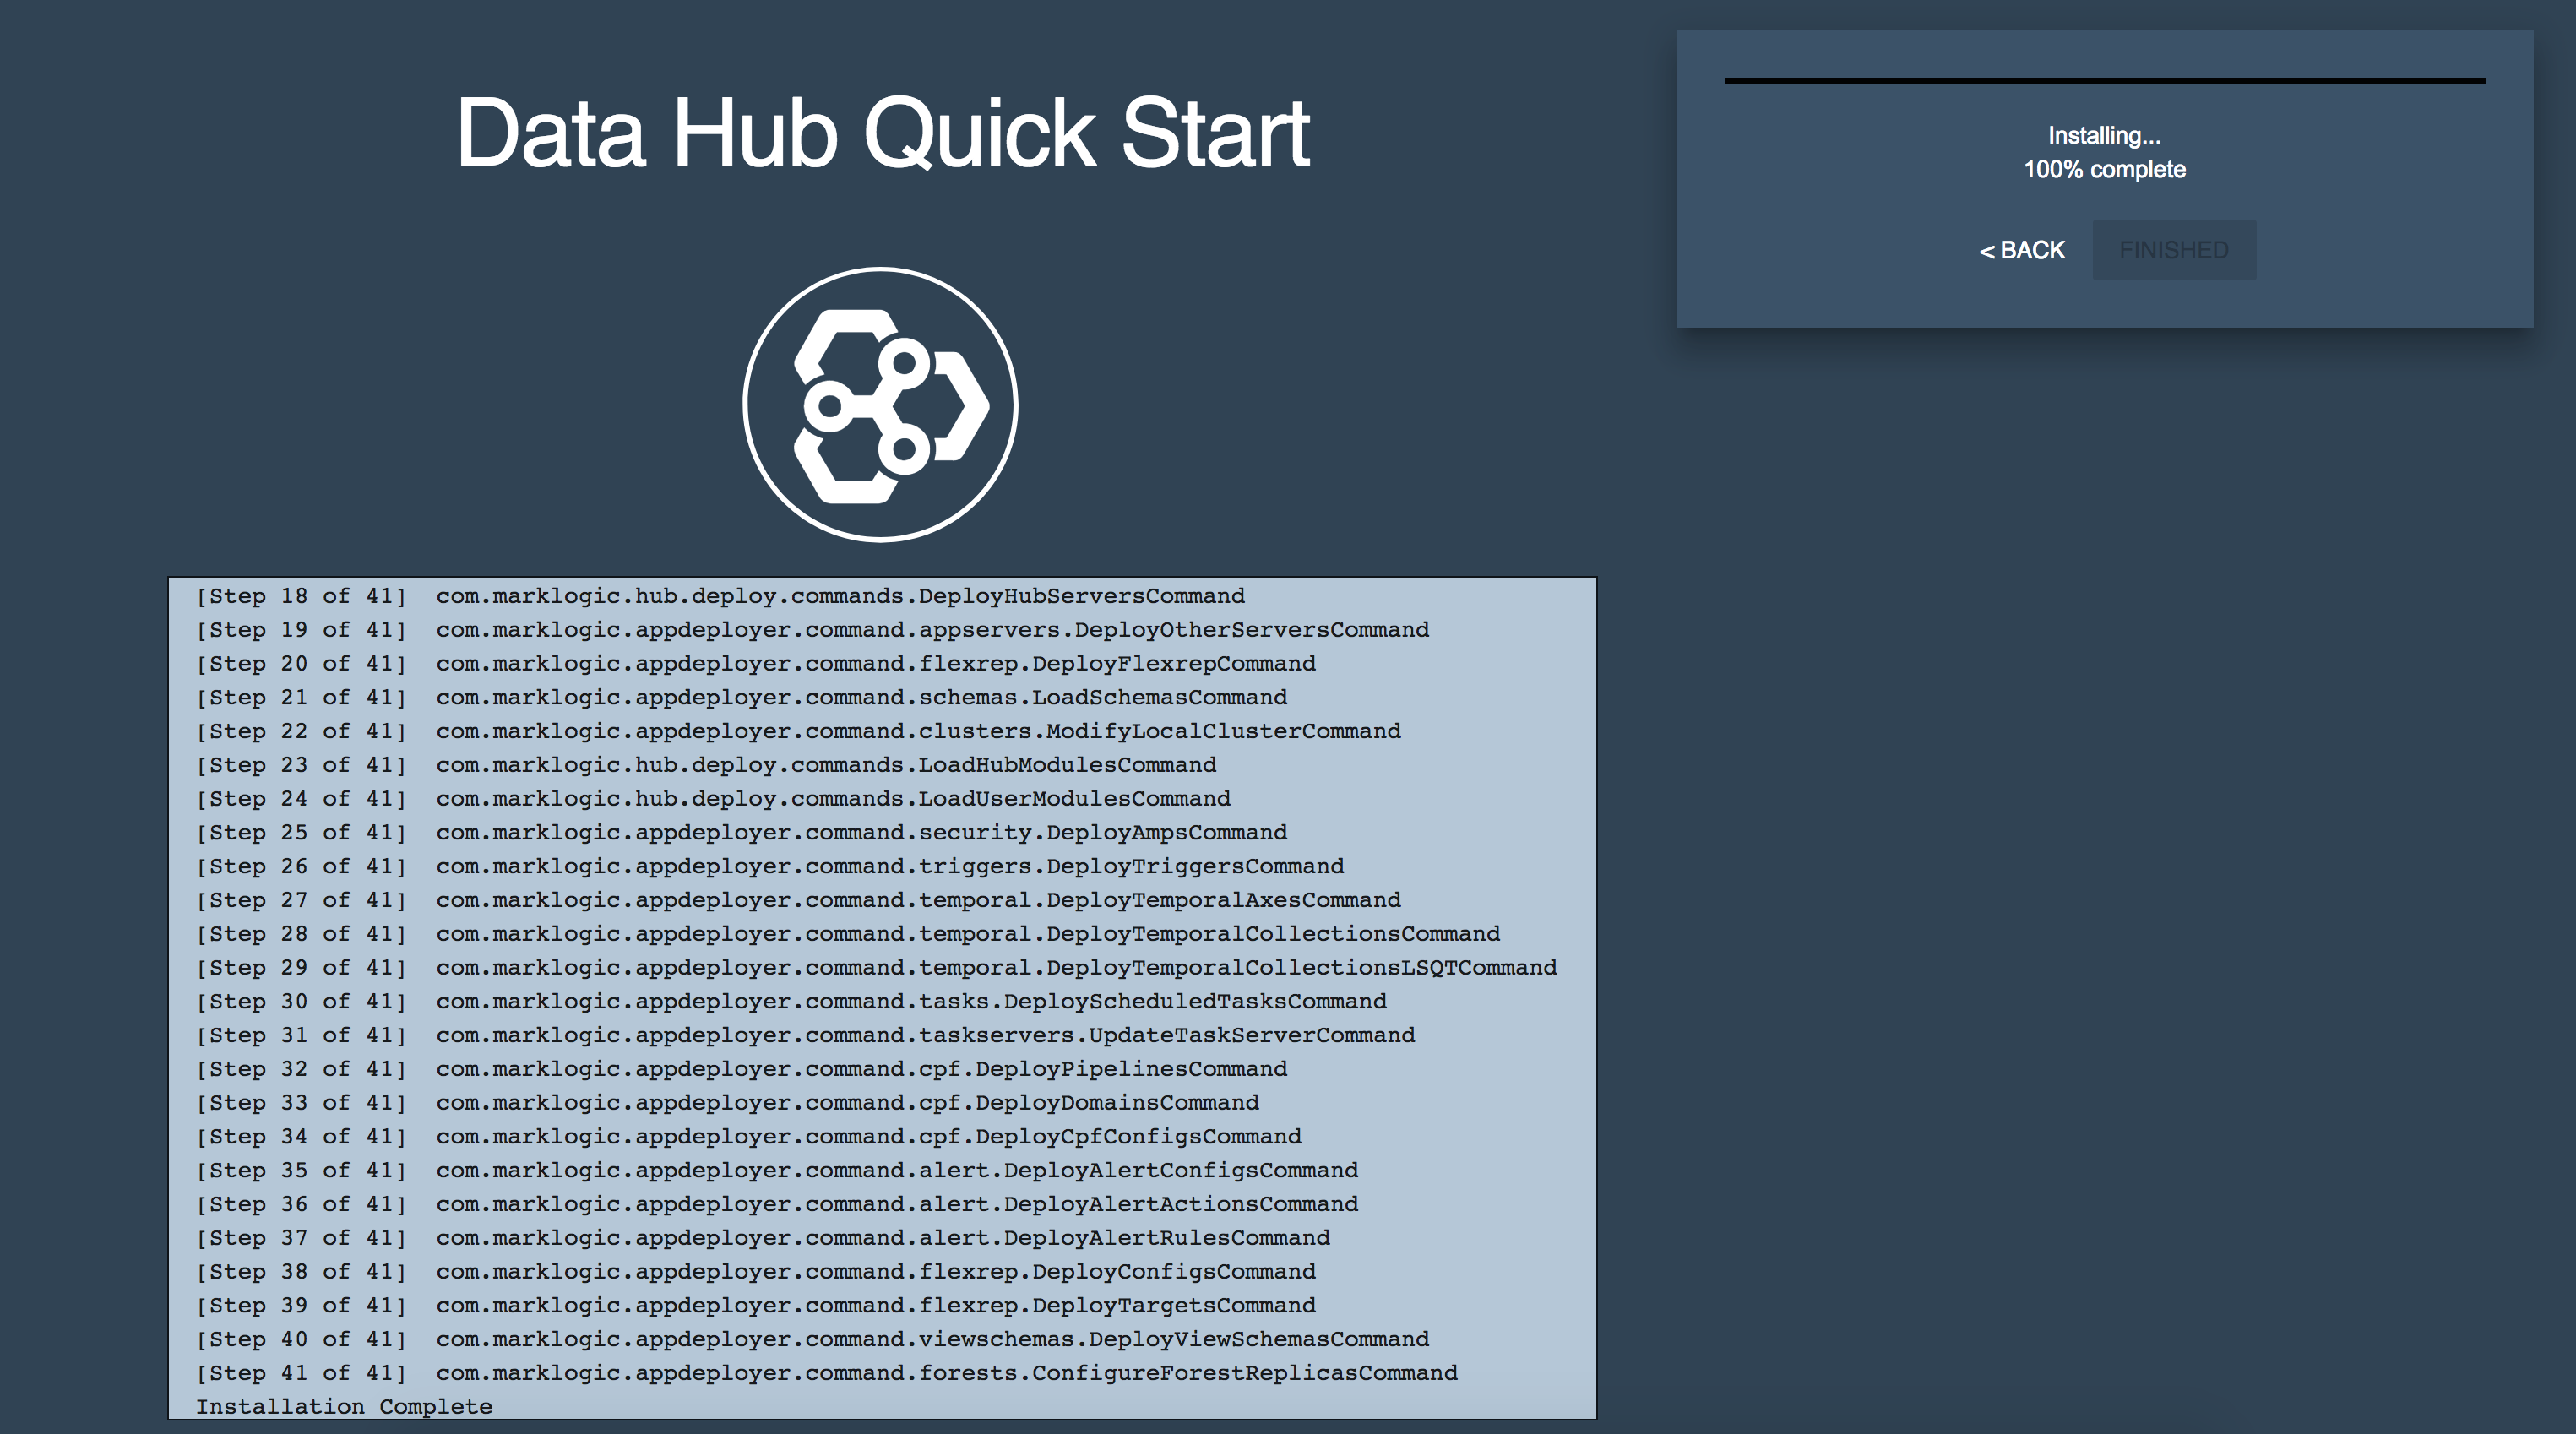 Once in a while, the hub installation on Quickstart failed